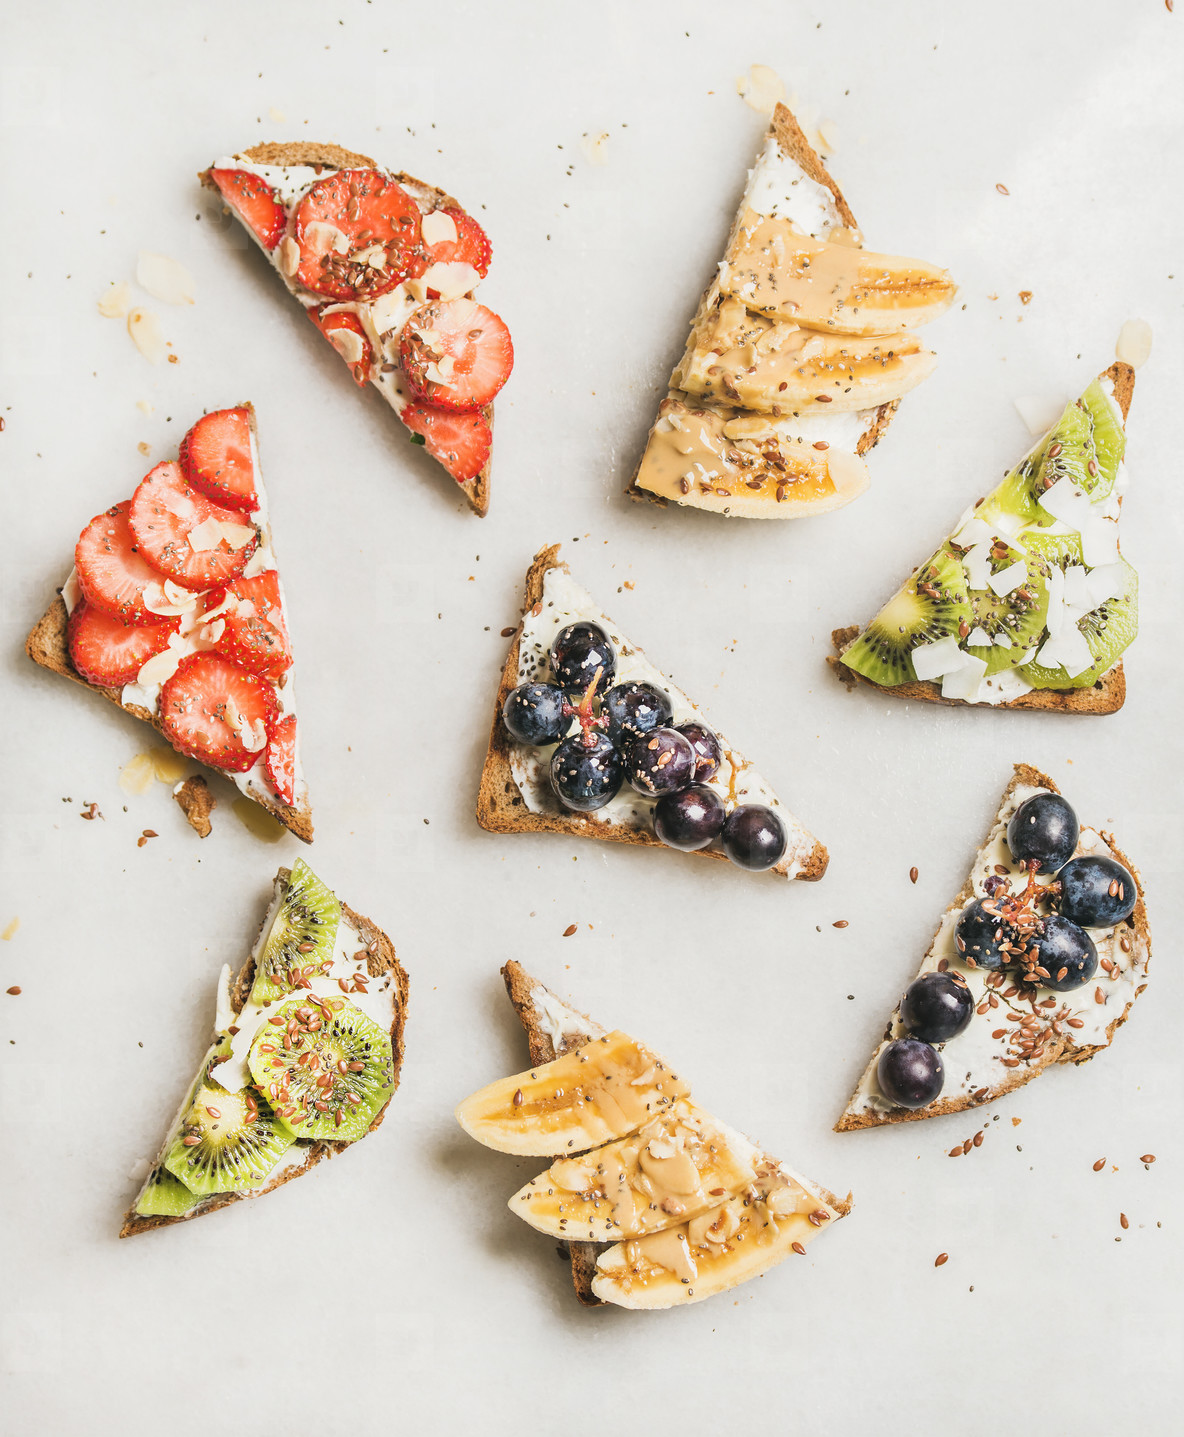 Healthy breakfast toasts with fruit  nuts  seed and cream cheese